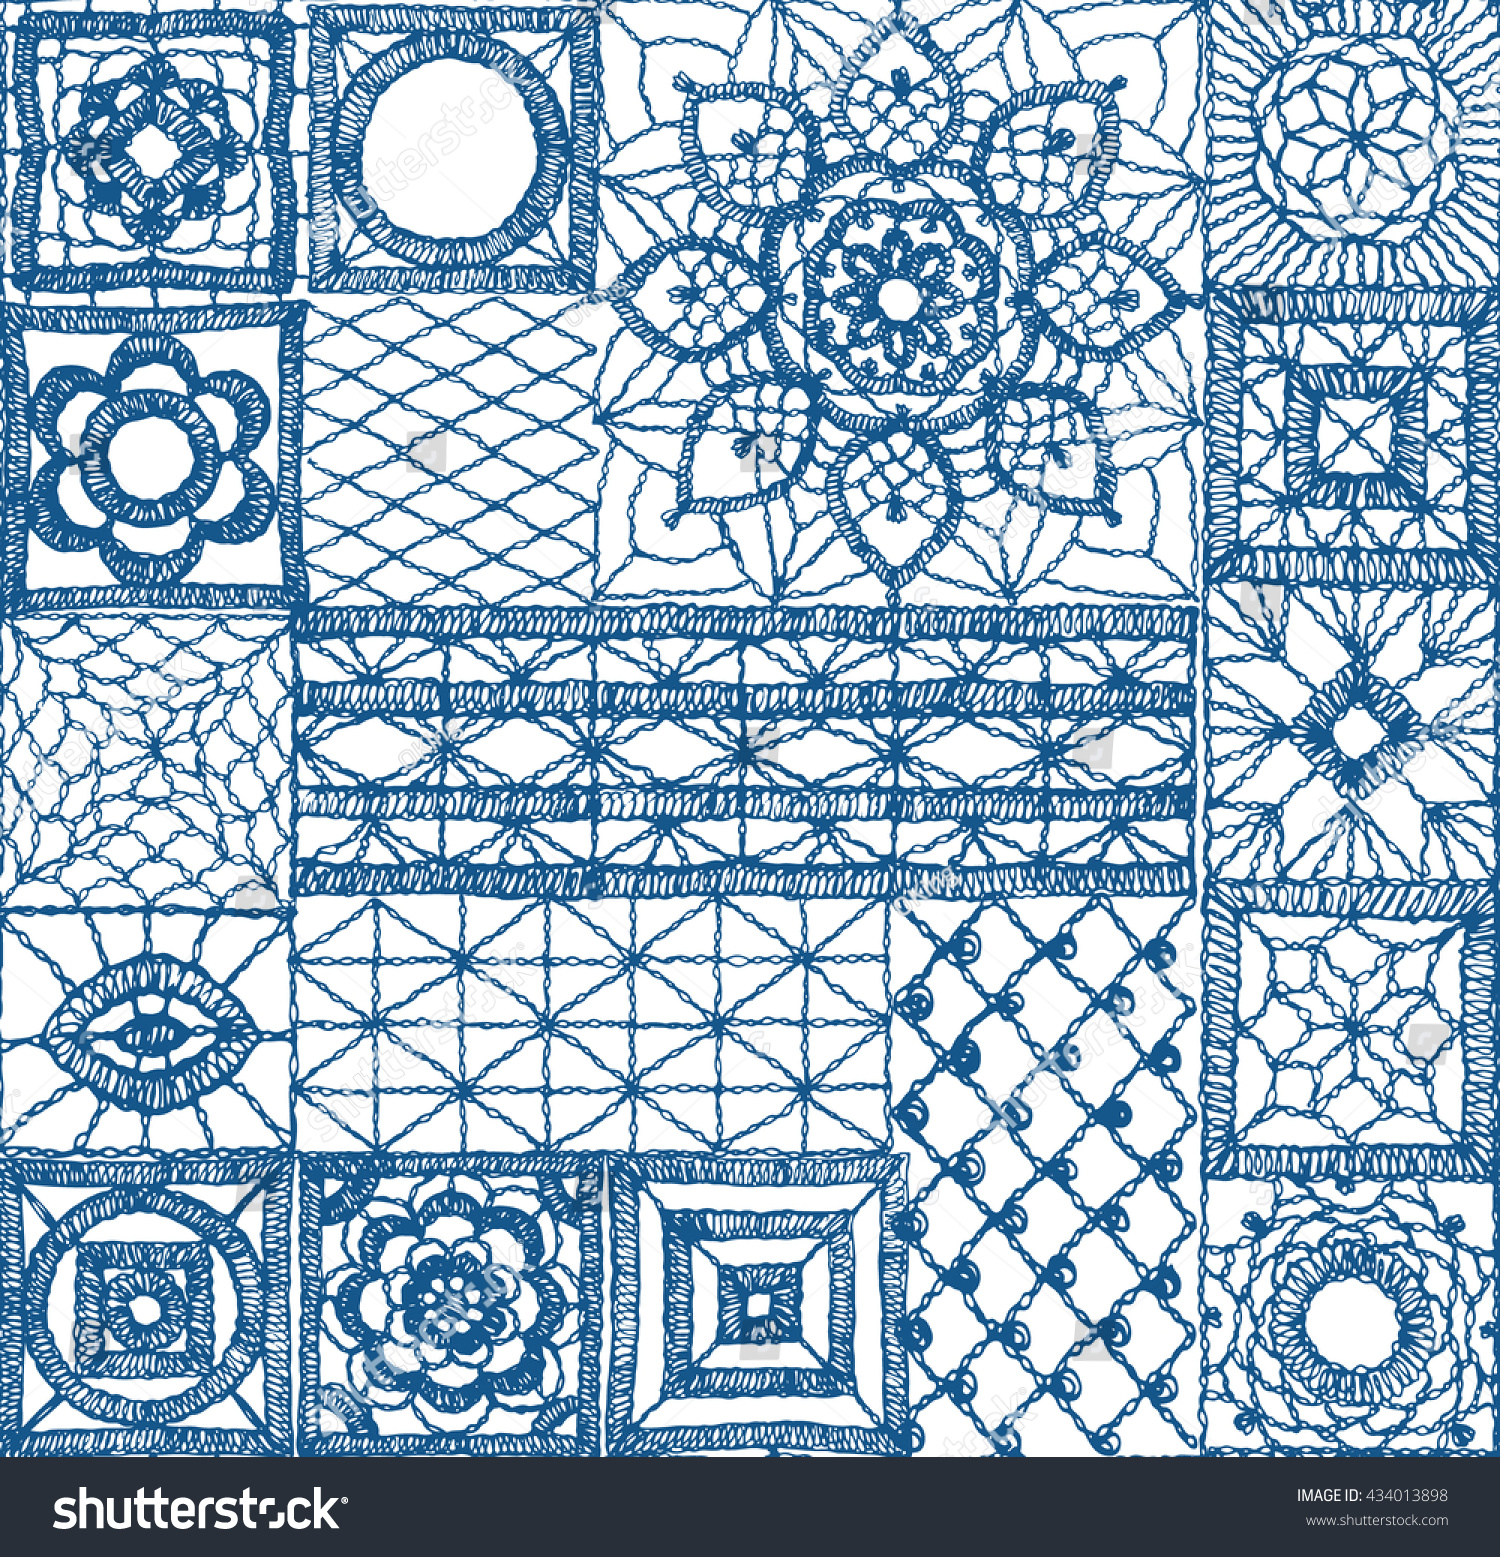 Crochet Lace Elements Square Isolated Crocheted Stock Vector ...